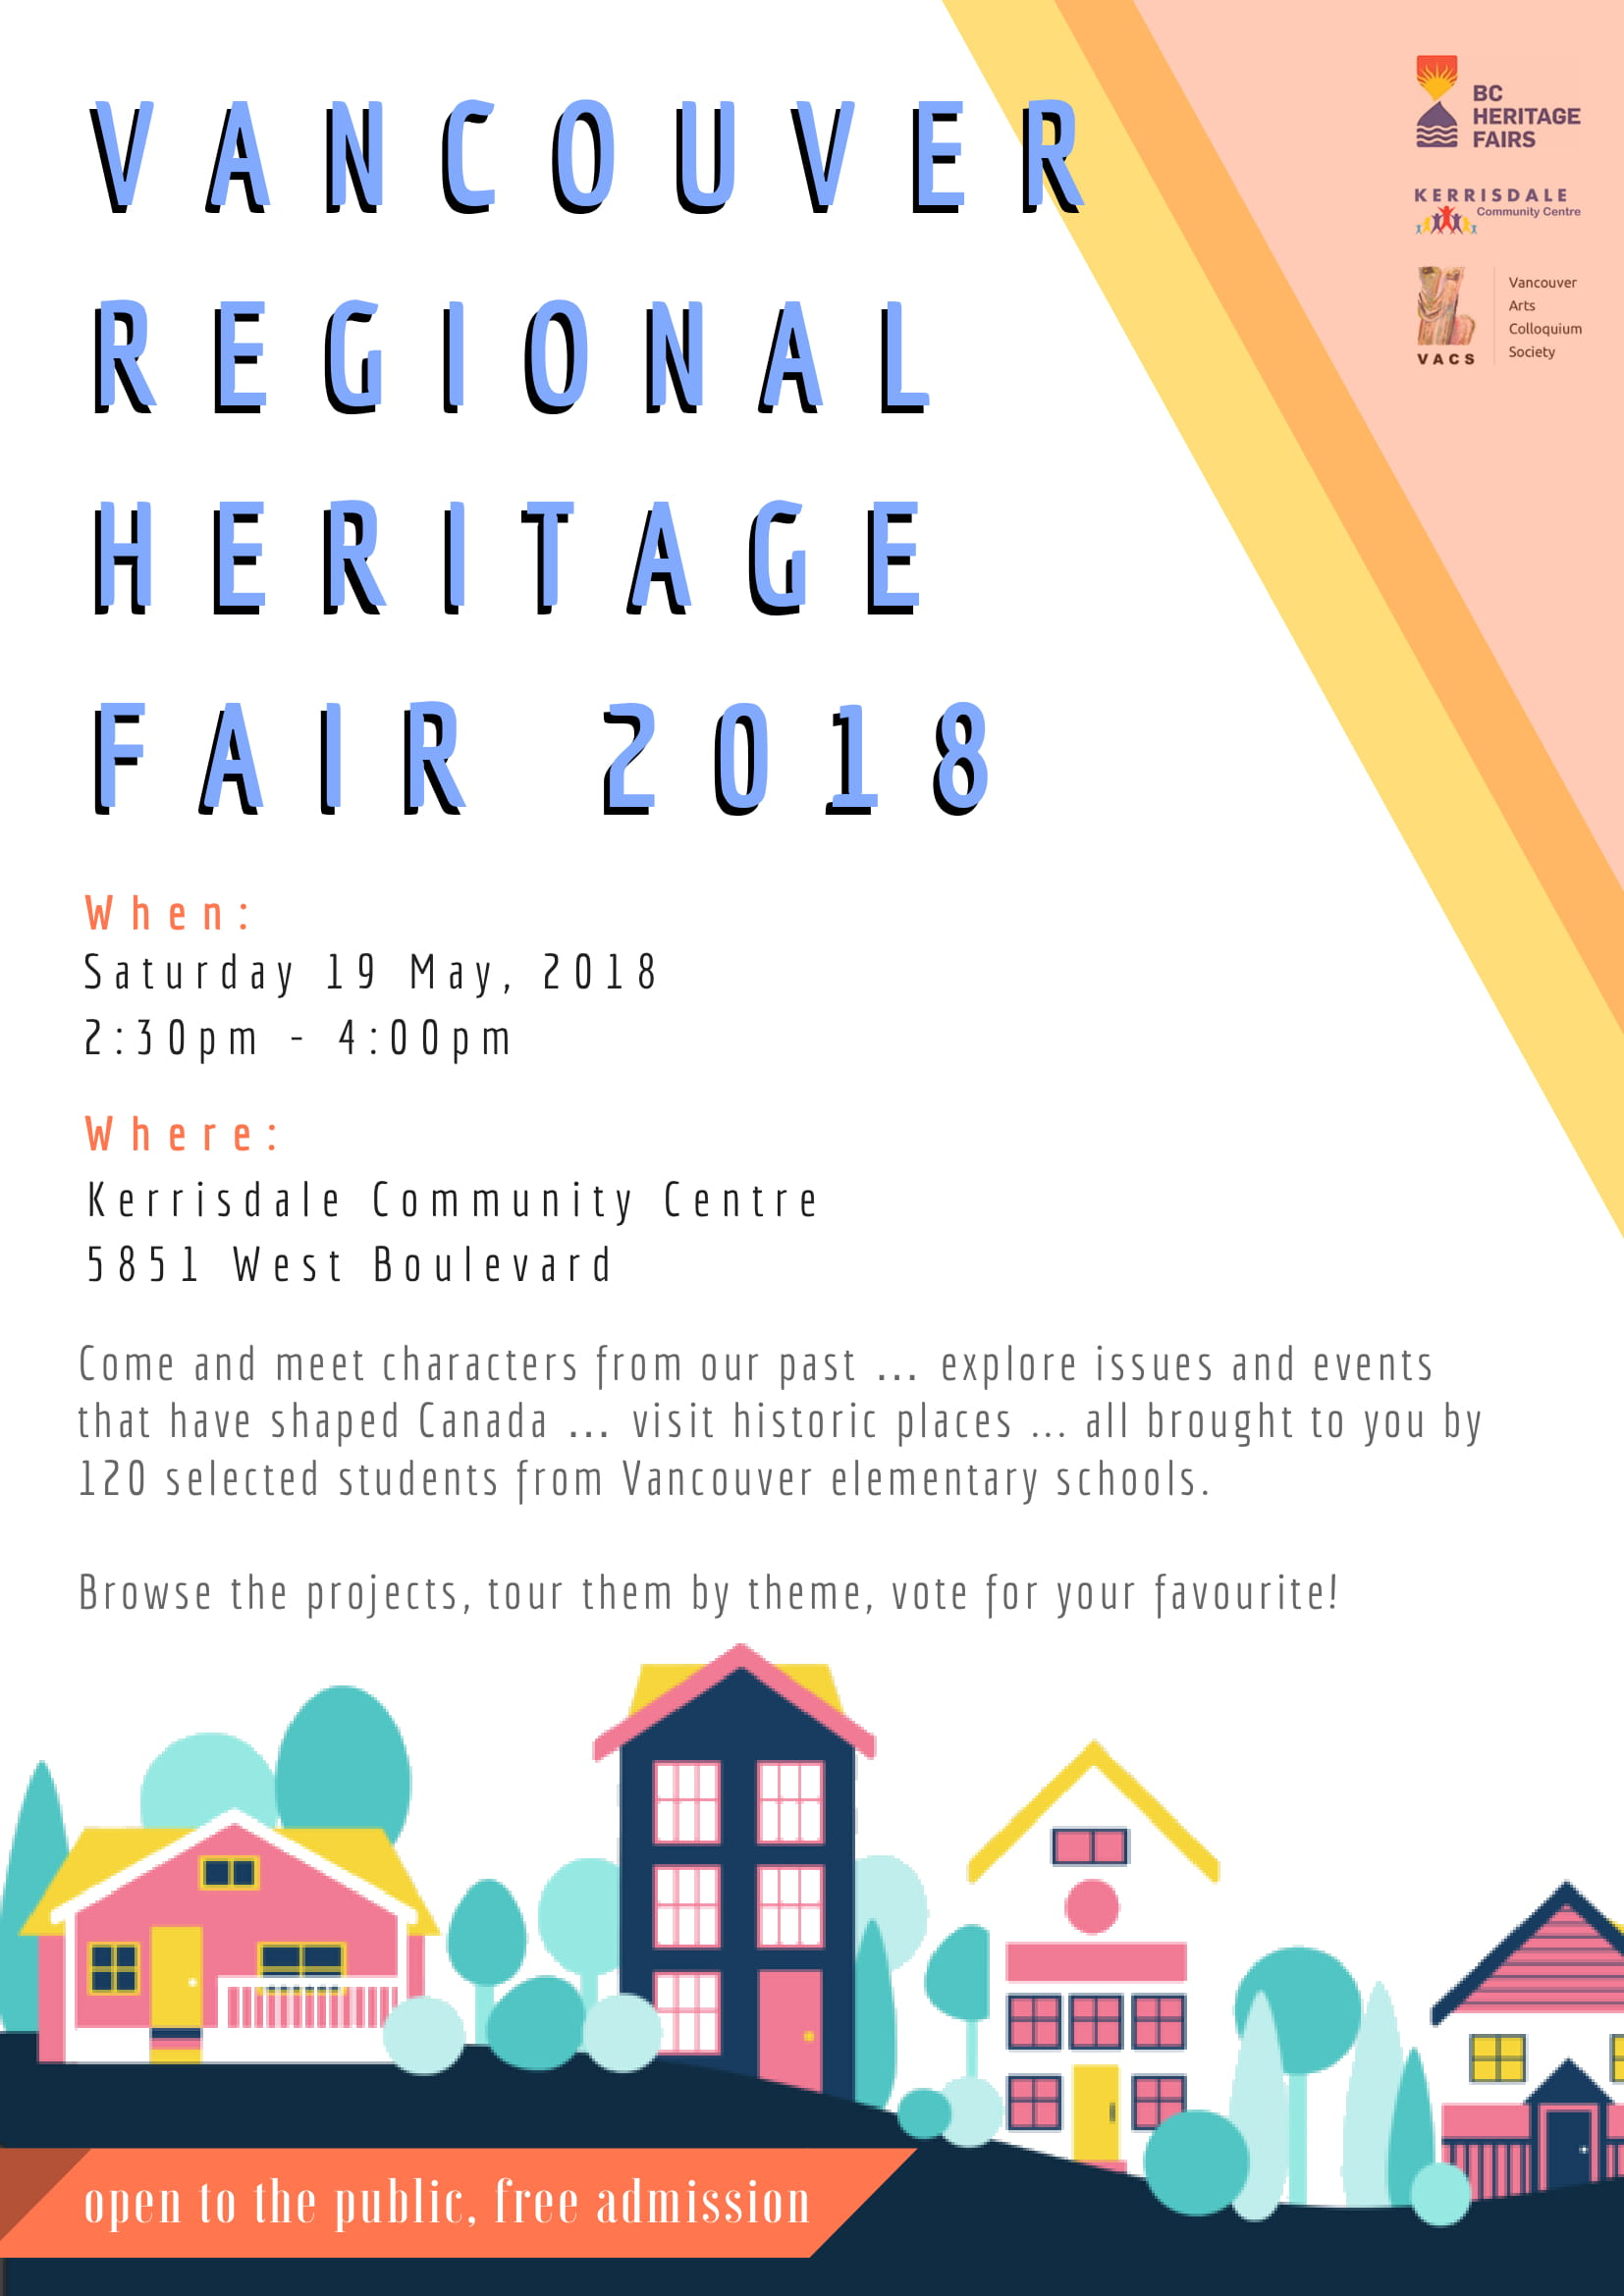 Vancouver Regional Heritage Fair 2018 When: Saturday May 19, 2018 2:30PM-4:00PM Where: Kerrisdale Community Centre 5851 West Boulevard Come and meet characters from our past…explore issues and events that have shaped Canada…visit historic places…all brought to you by 120 selected students from Vancouver elementary schools Browse the projects, tour them by them, vote for your favourite!